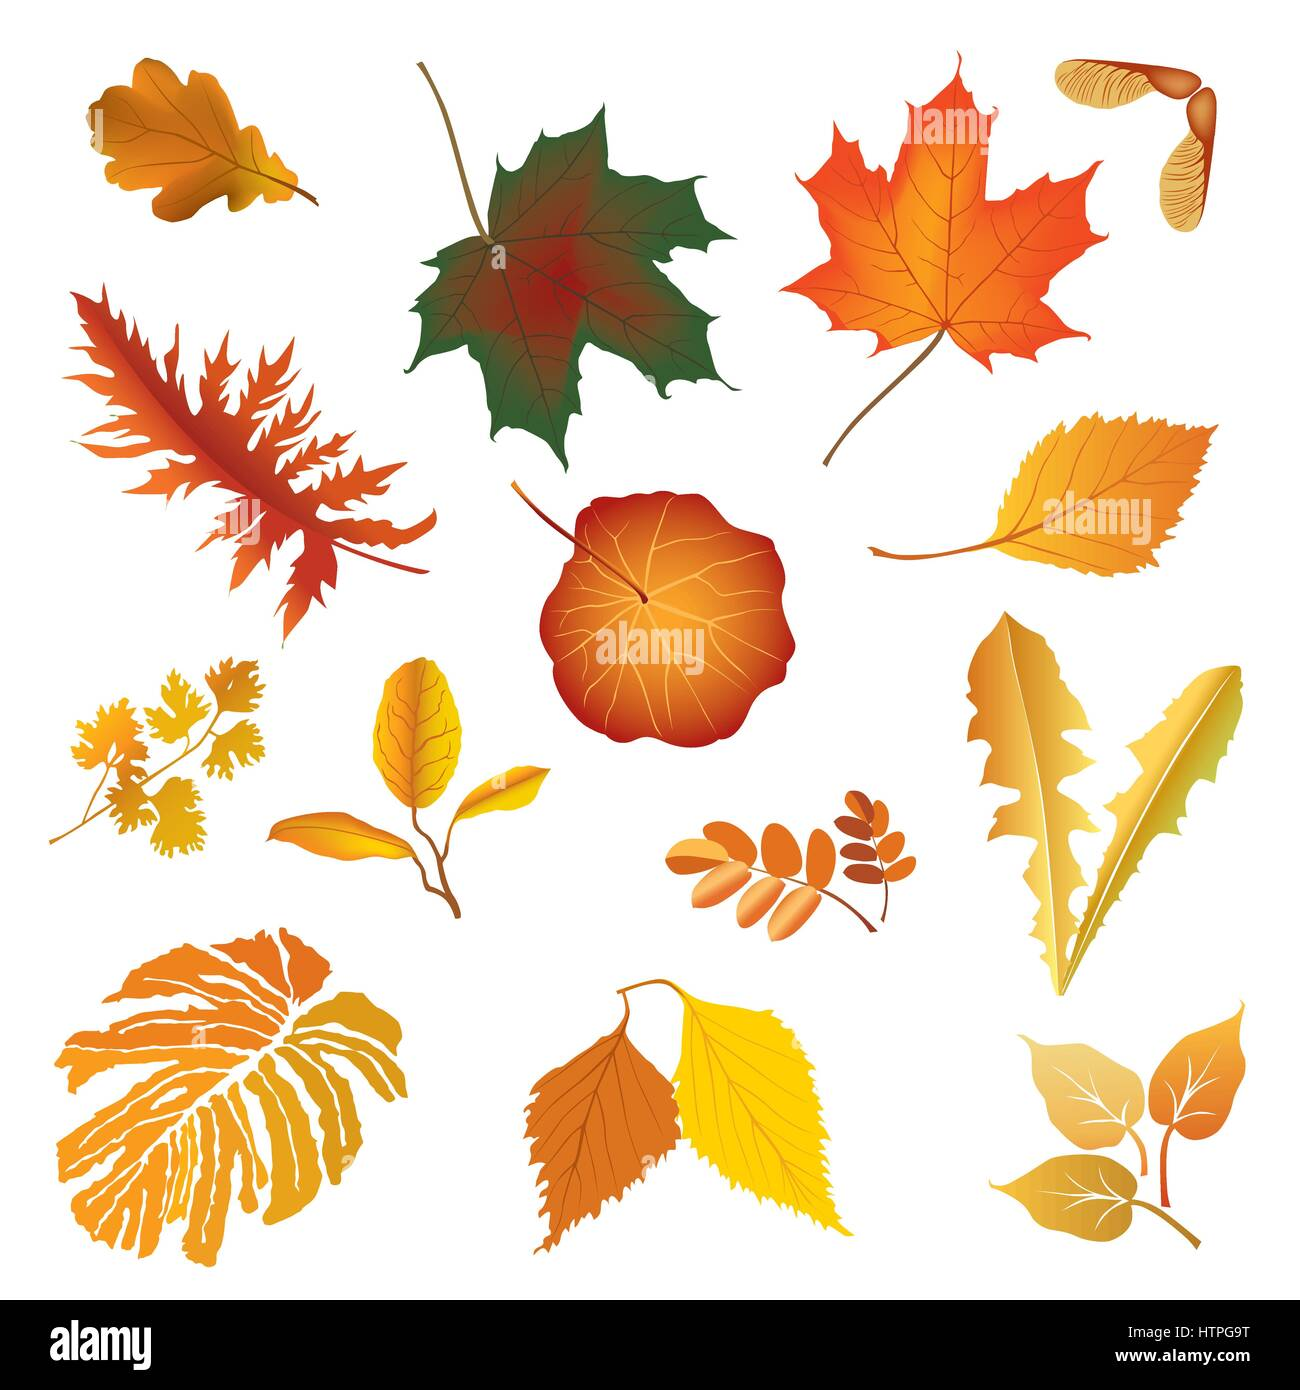 Nature Fall Leaf Icon Set Herb Floral Sign Autumn Leaves Season Stock Vector Image Art Alamy